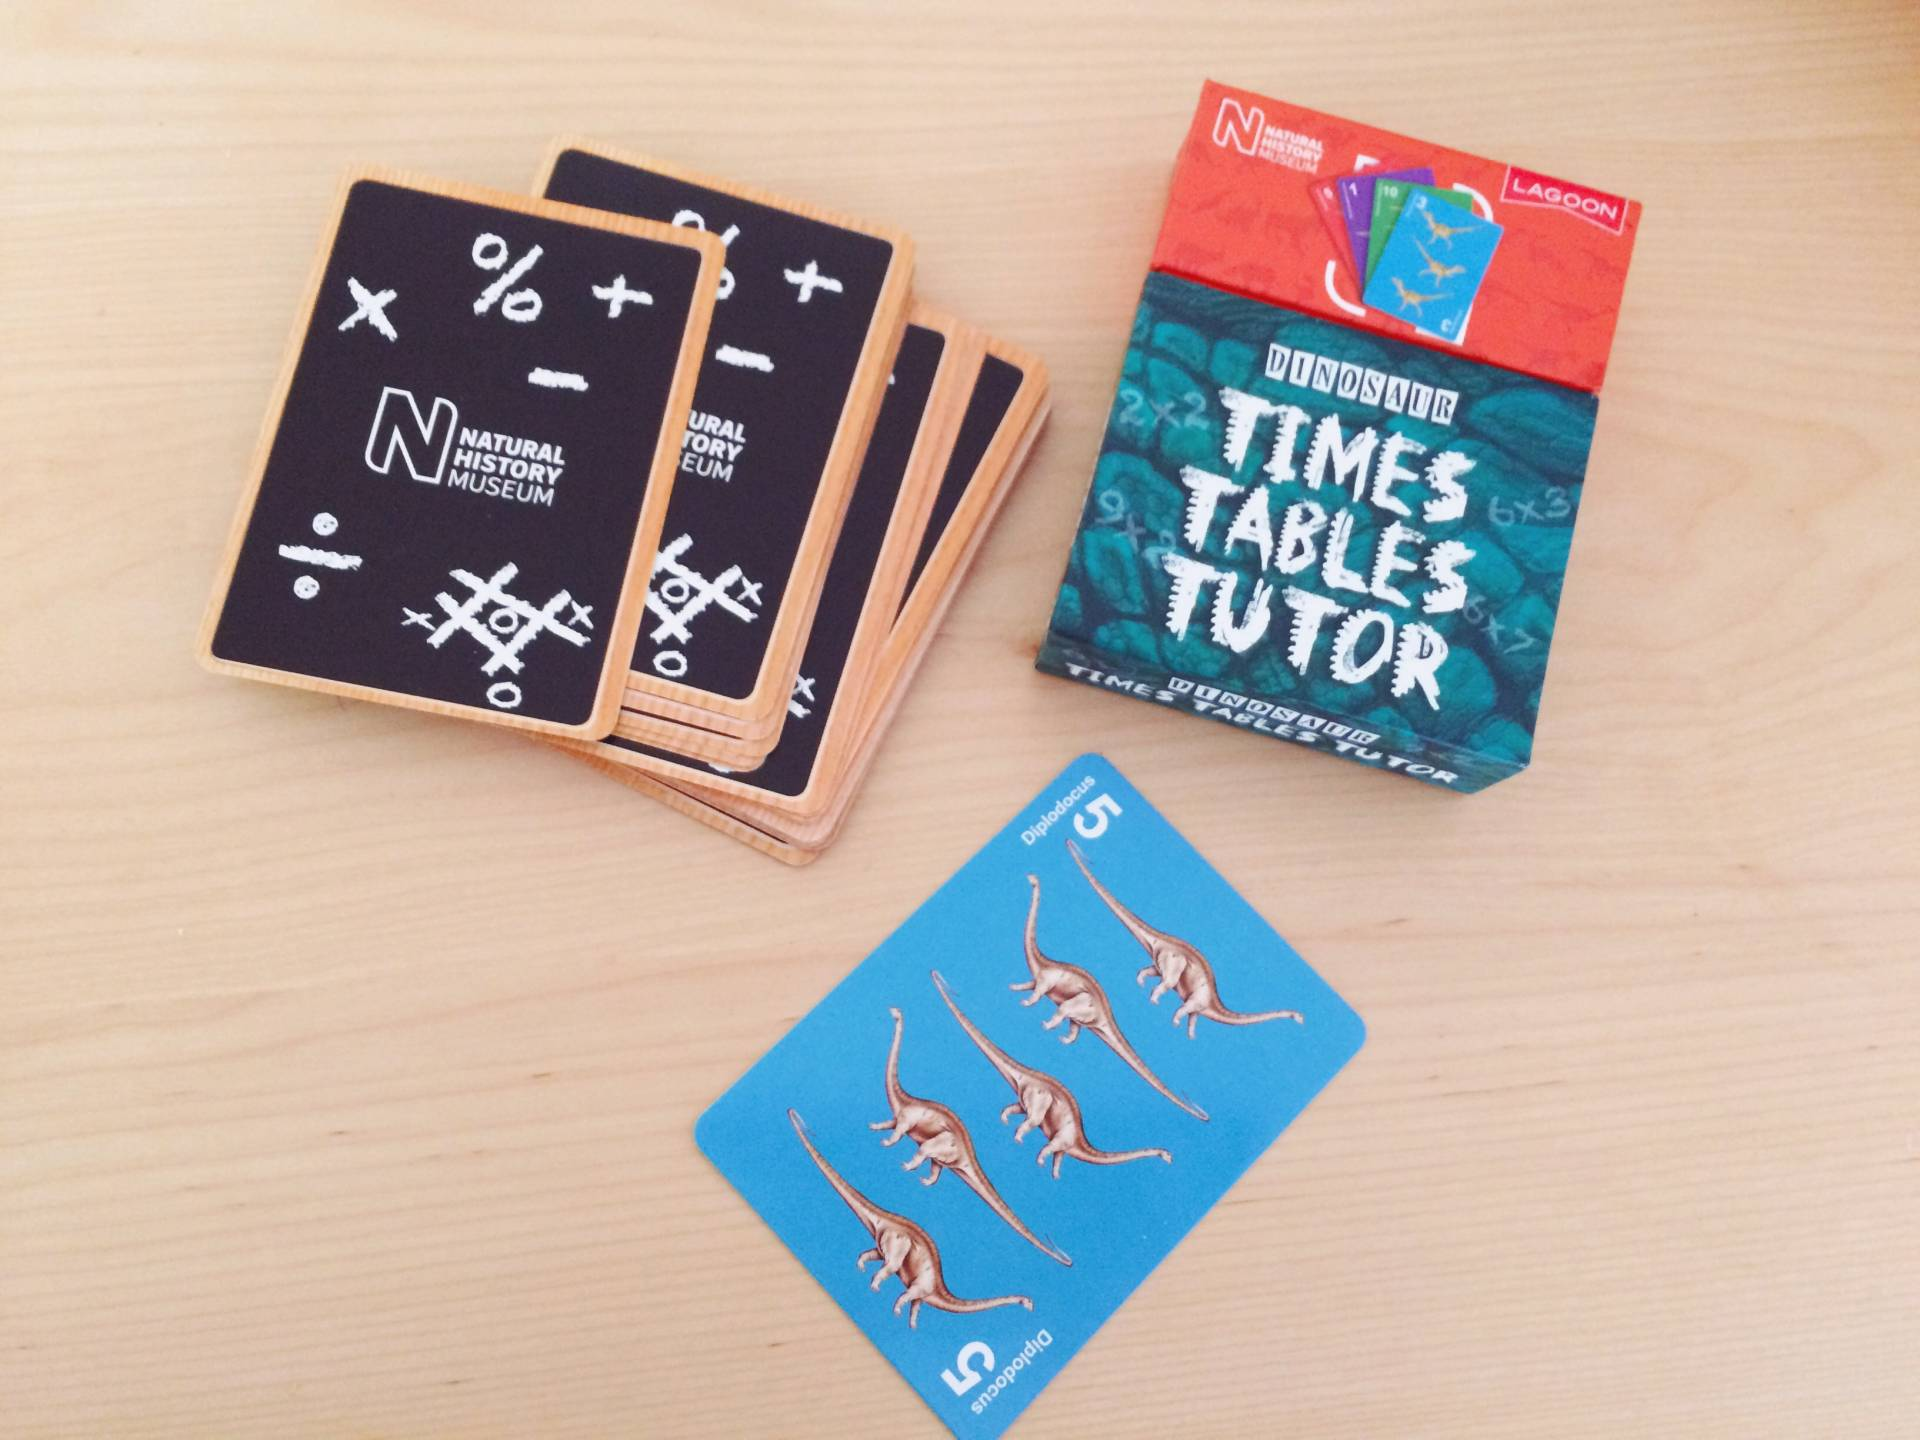 Dinosaur Times Tables Tutor cards By the national history museum review and giveaway